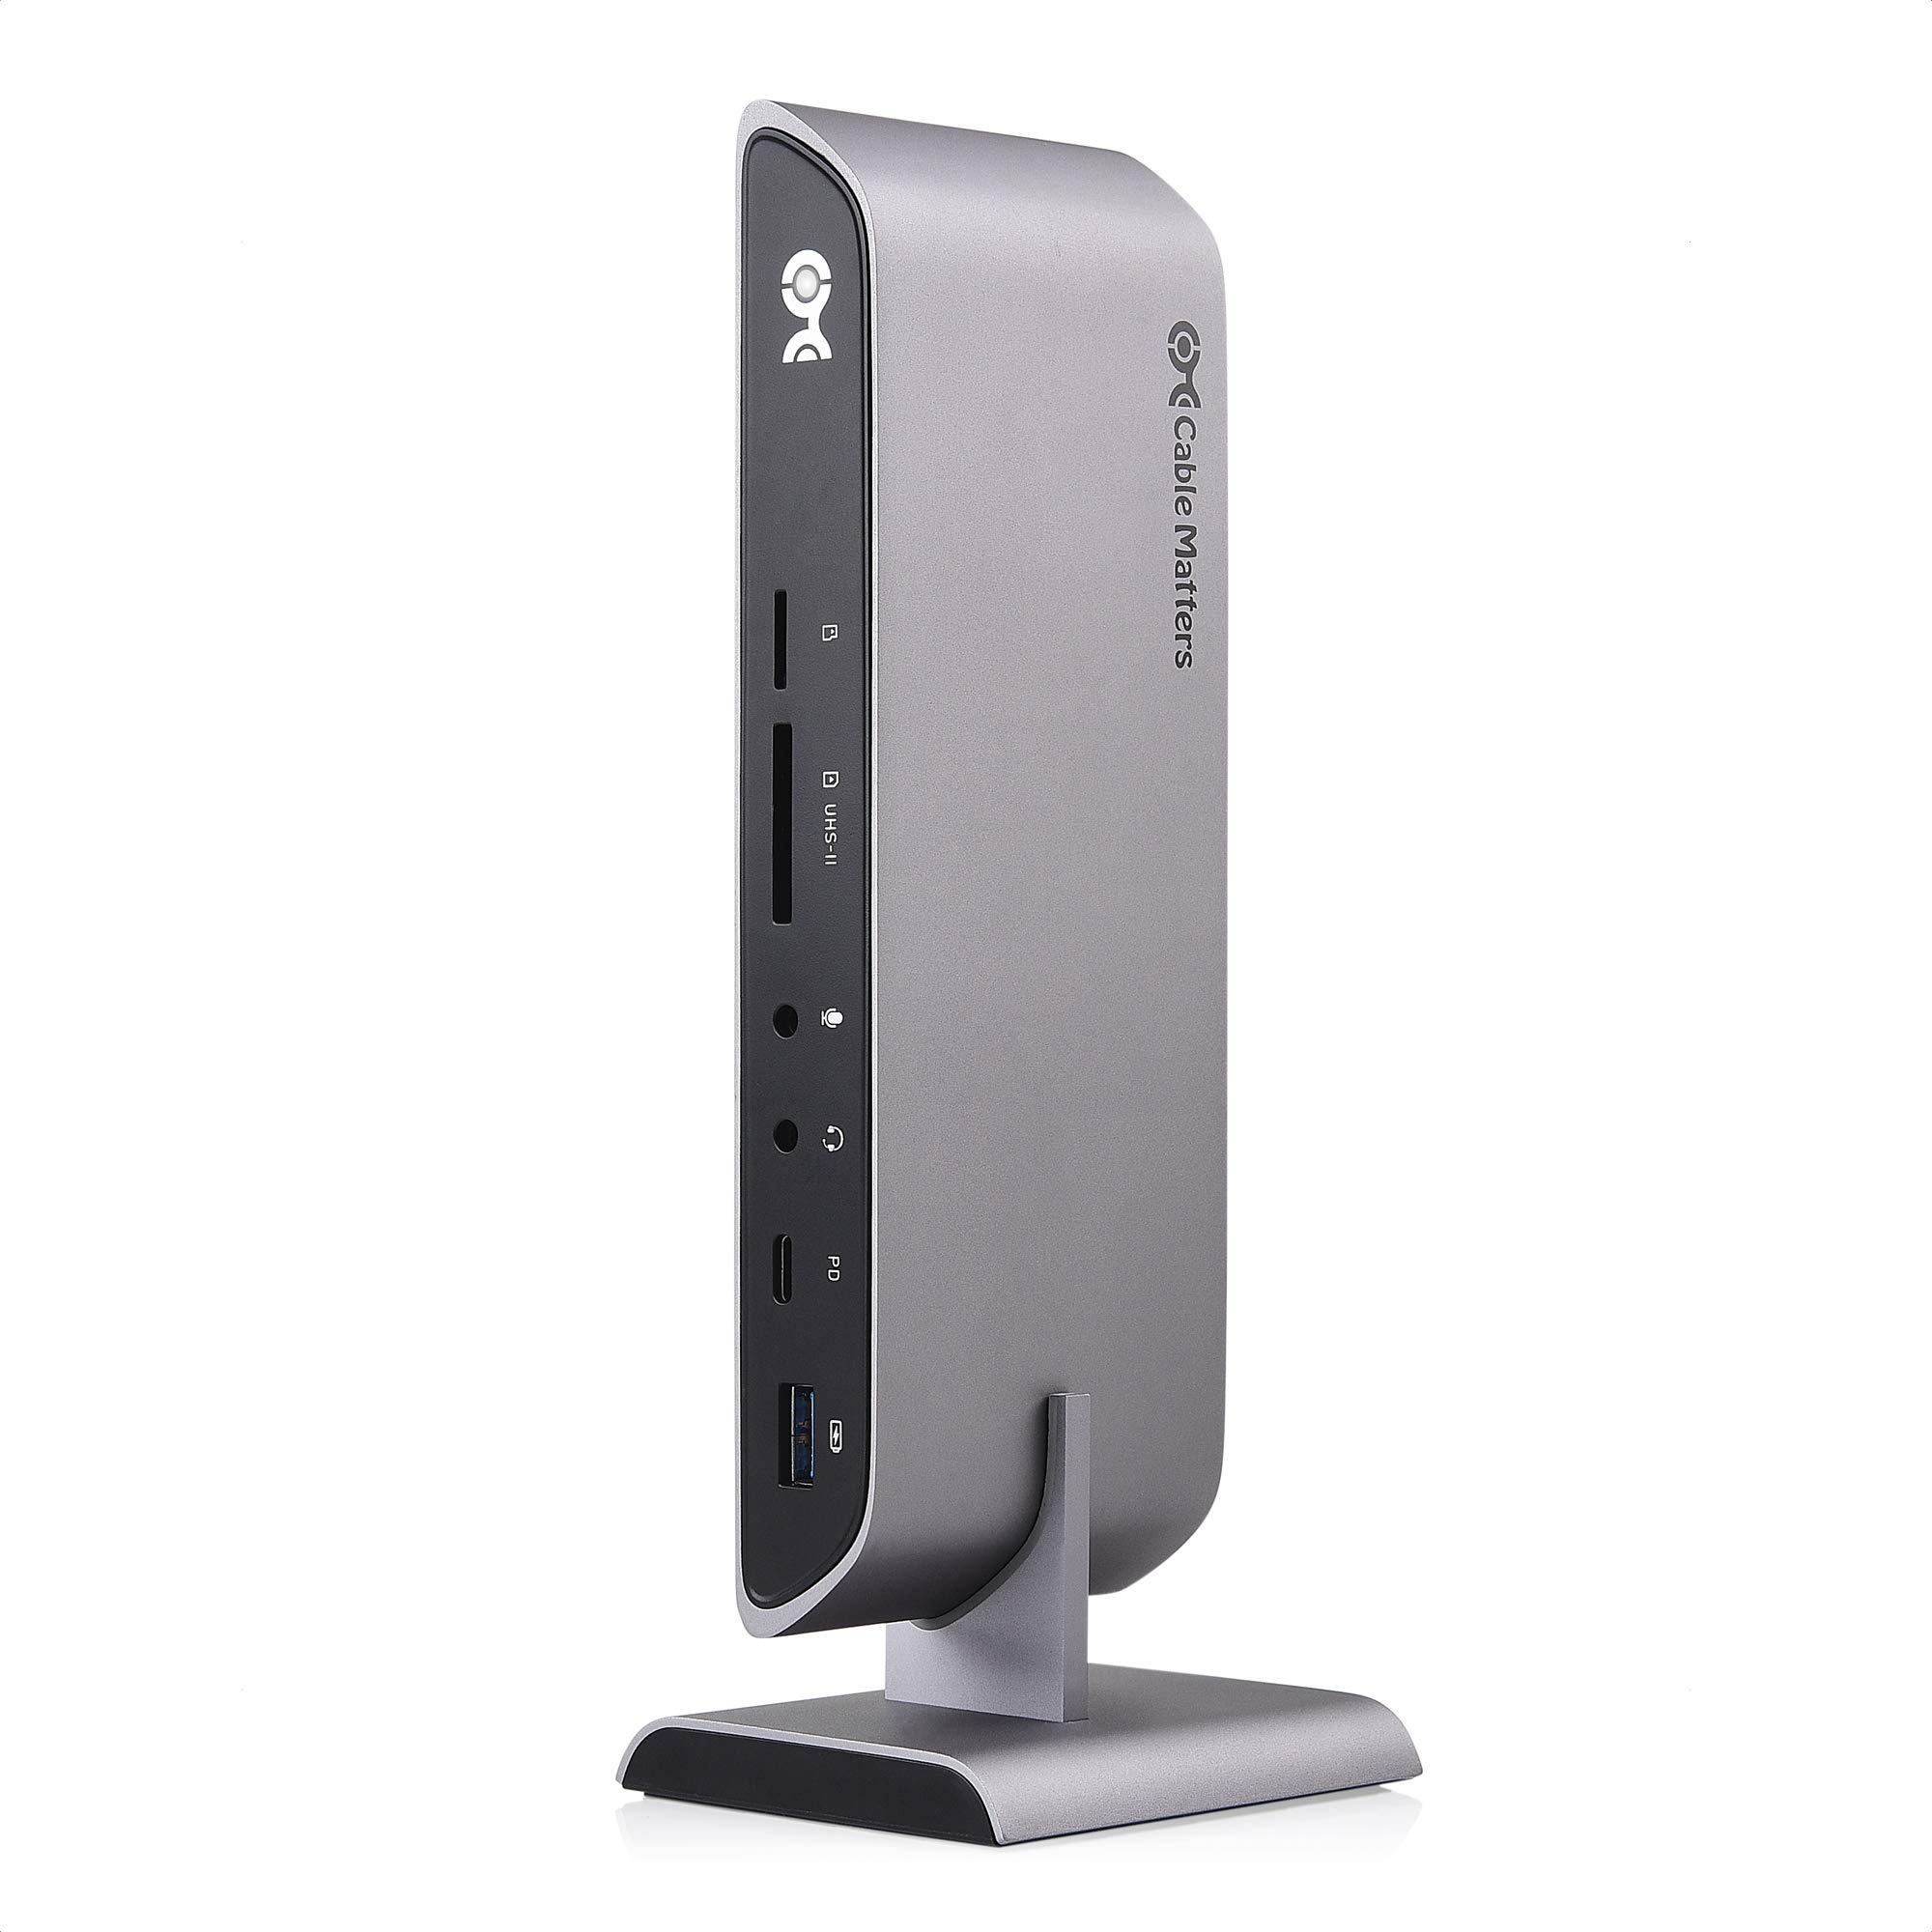 Cable Matters 10Gbps USB C Dock with Dual 4K HDMI and 80W Charging for Windows USB C Docking Station USB-C /& Thunderbolt 3 Port Compatible Supports One External Display with MacBook Pro